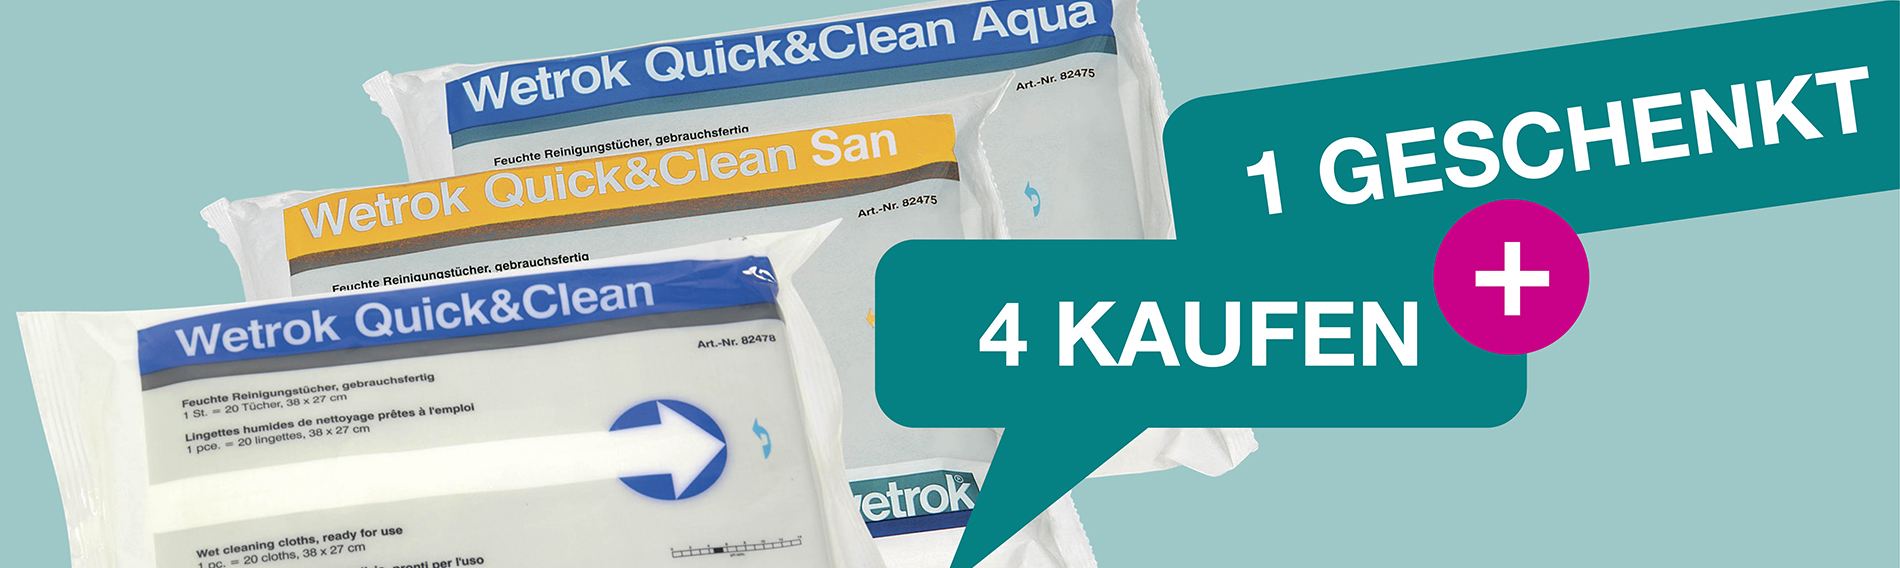 Quick & Clean: Buy 4, get 1 Free